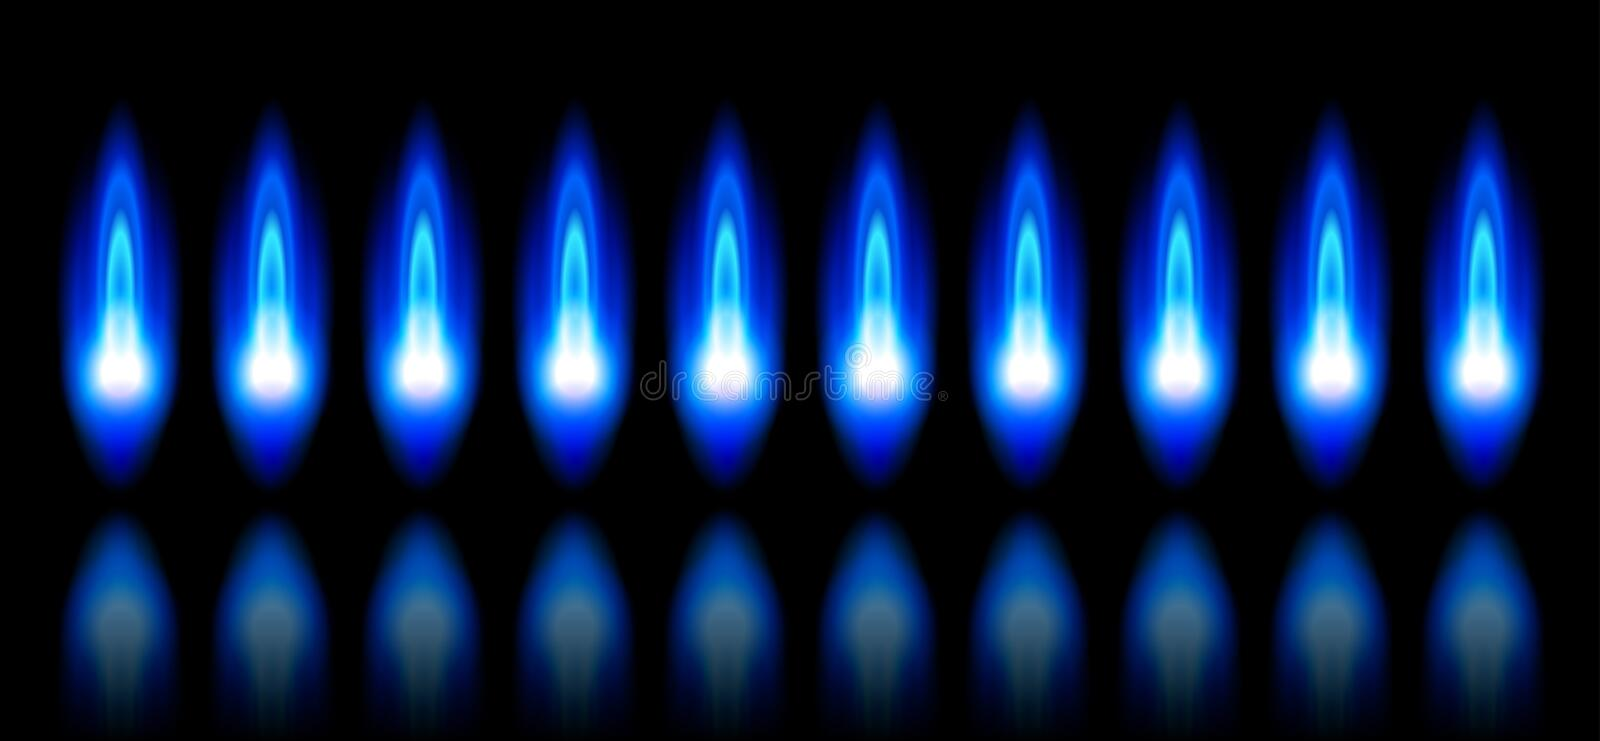 Blue flames of a burning natural gas stock illustration